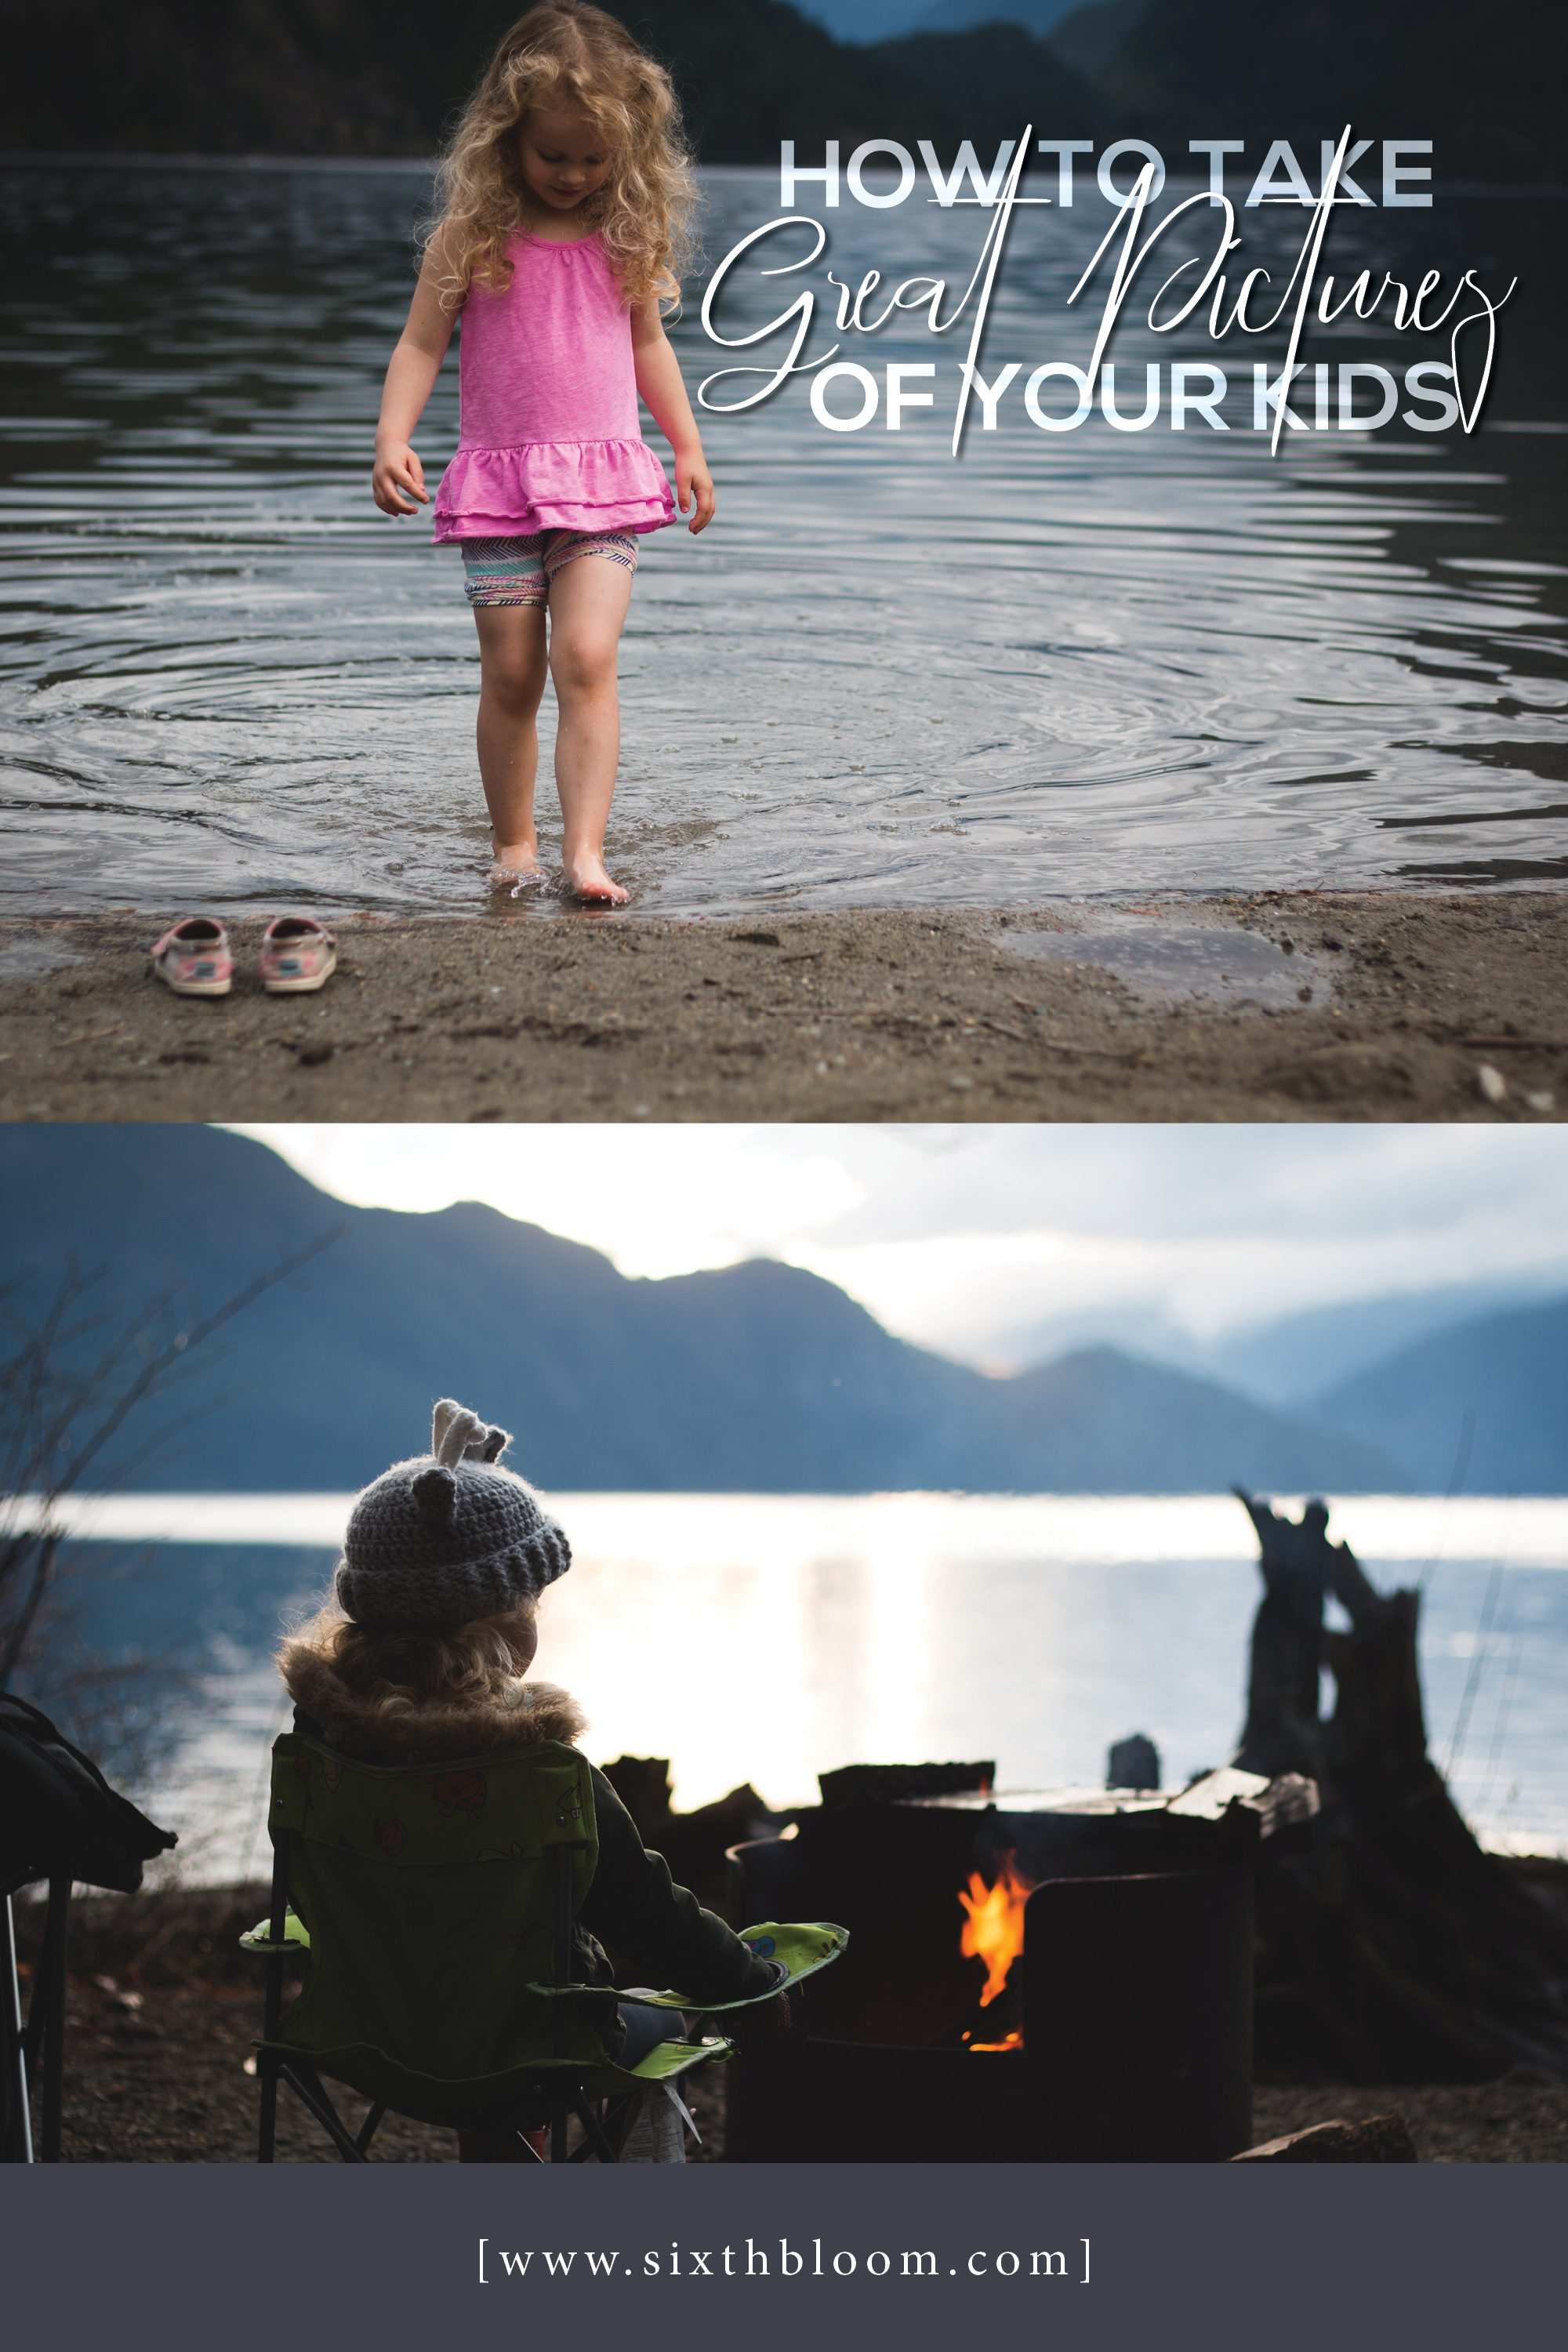 how to take great pictures of kids